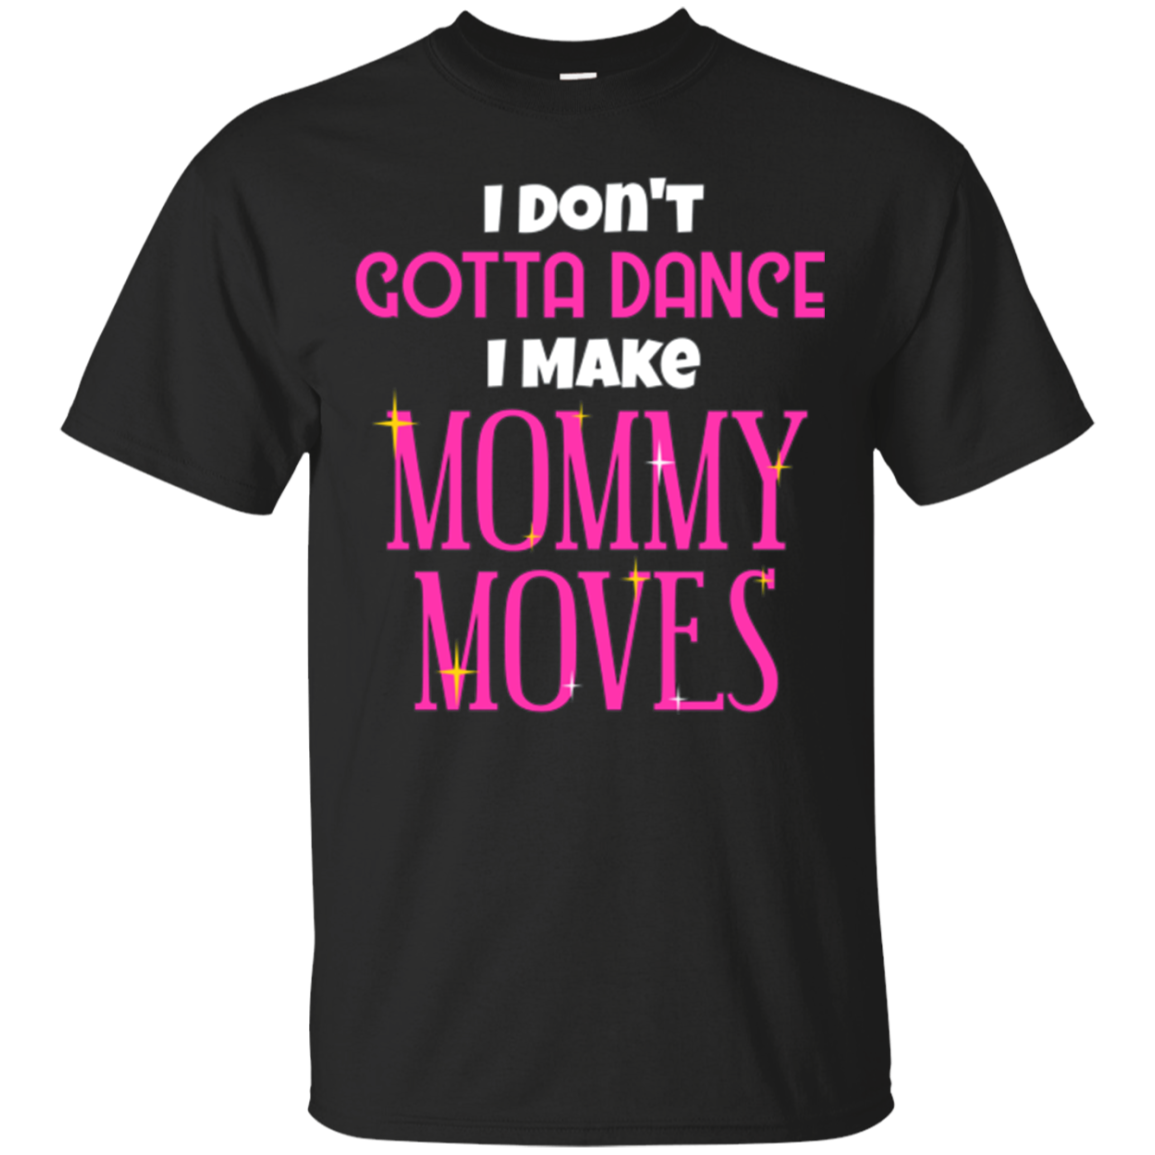 Funny I Dont Gotta Dance I Make Mommy Moves T-shirt Saying